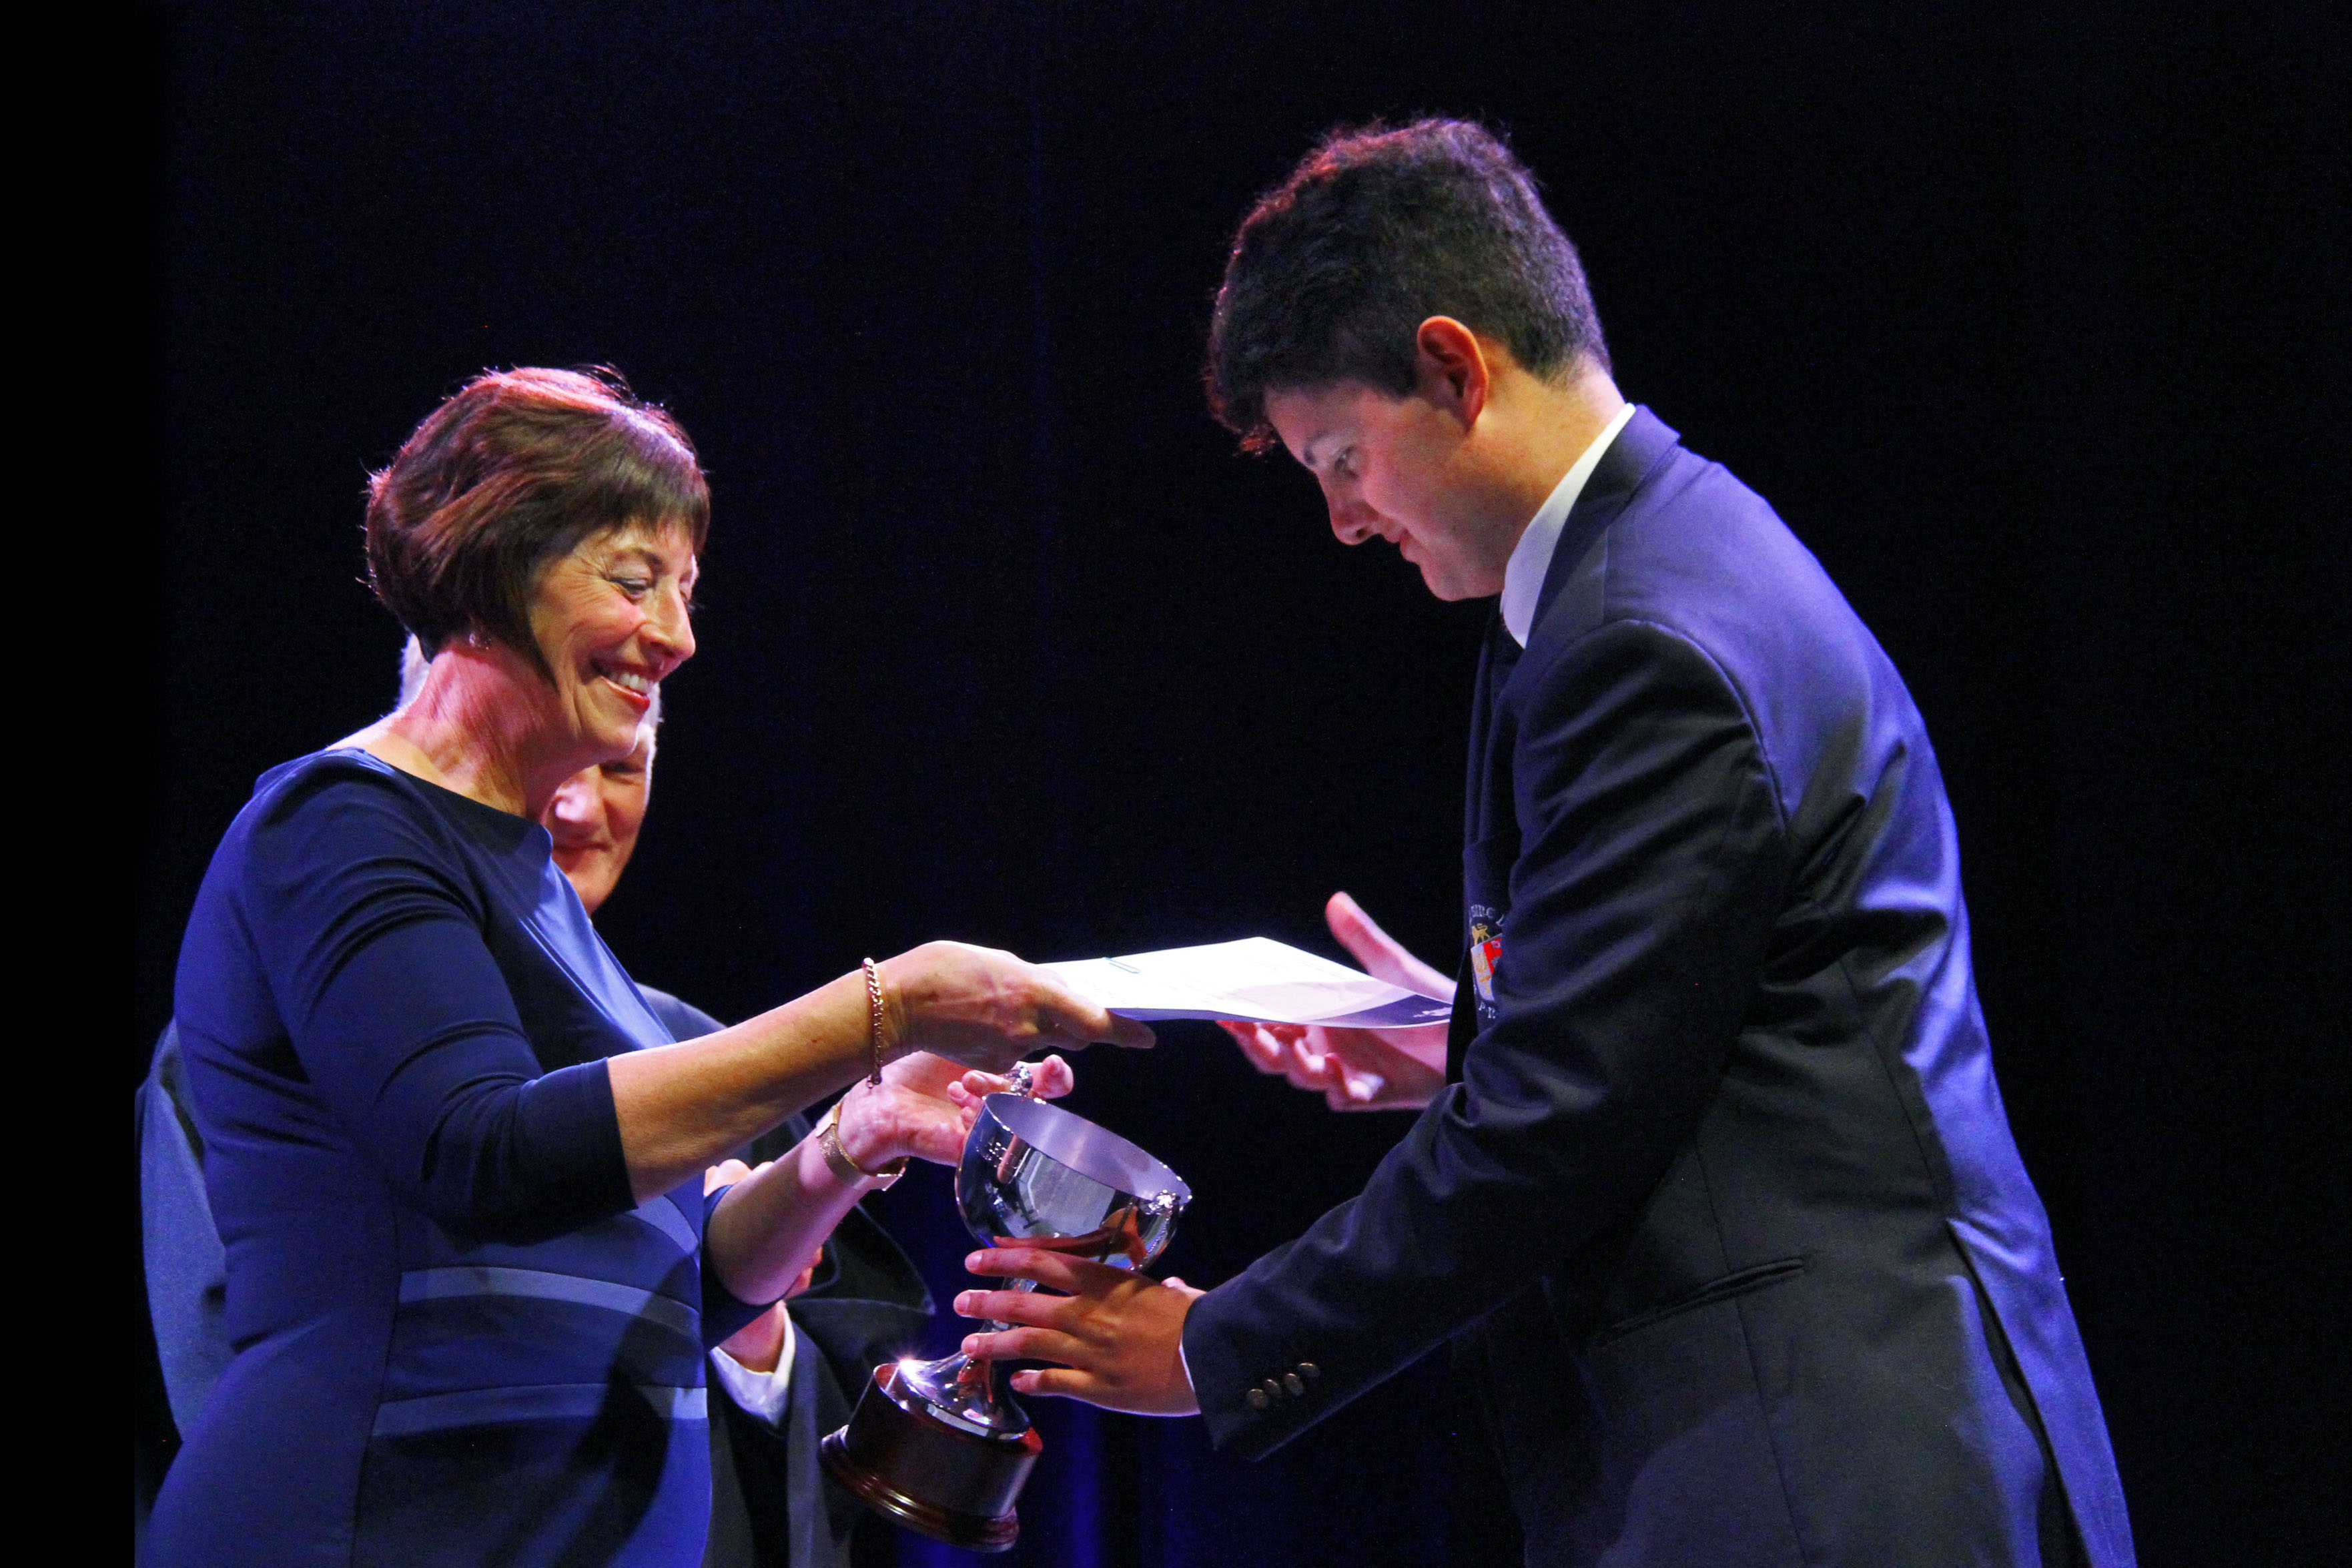 Carson Taare, Runnerup to Dux Artium 2019PNBHS 2019 Full School Prizegiving, Arena 1, Palmerston North Image by Gary Rodgers / Magnum Images  www.magnum-images.co.nz